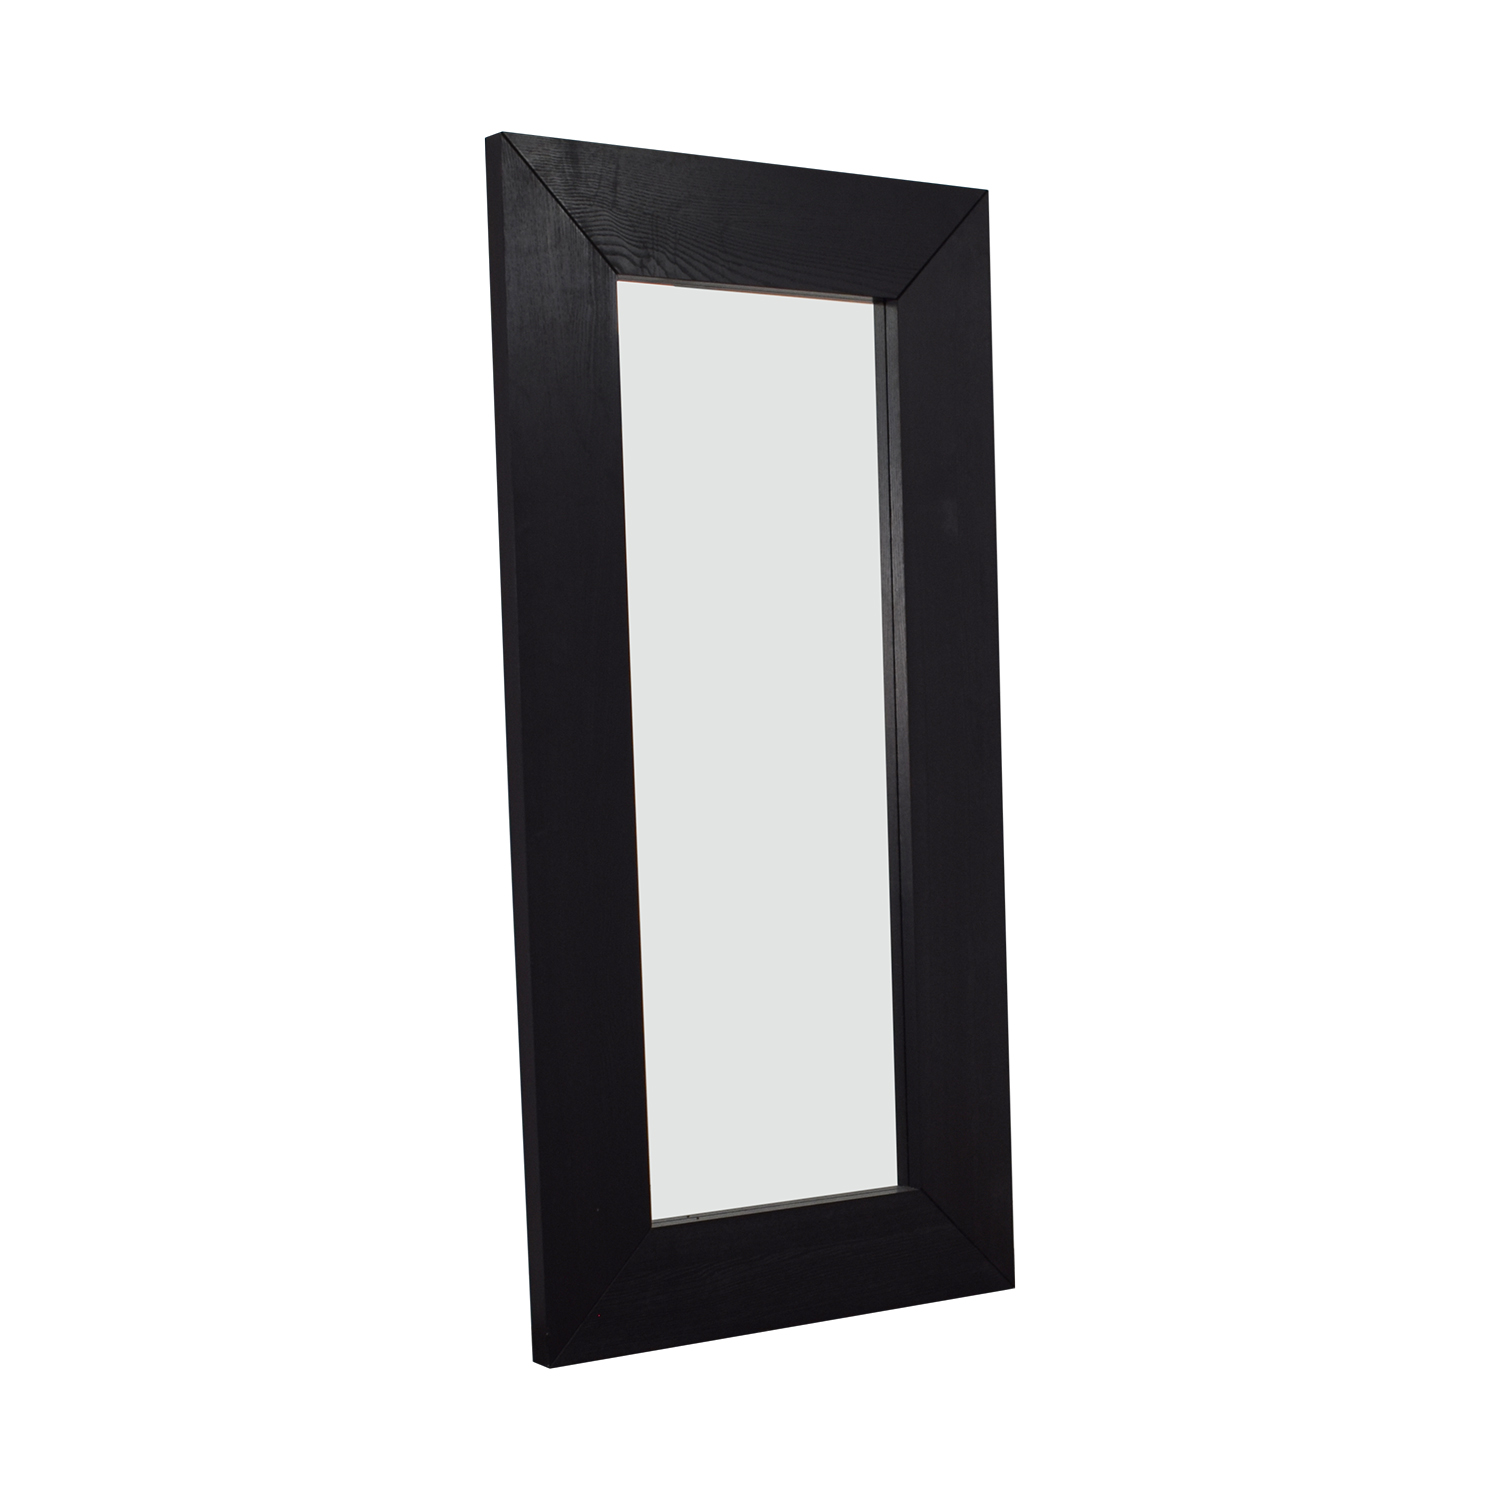 IKEA IKEA Mongstad Black Framed Mirror dimensions